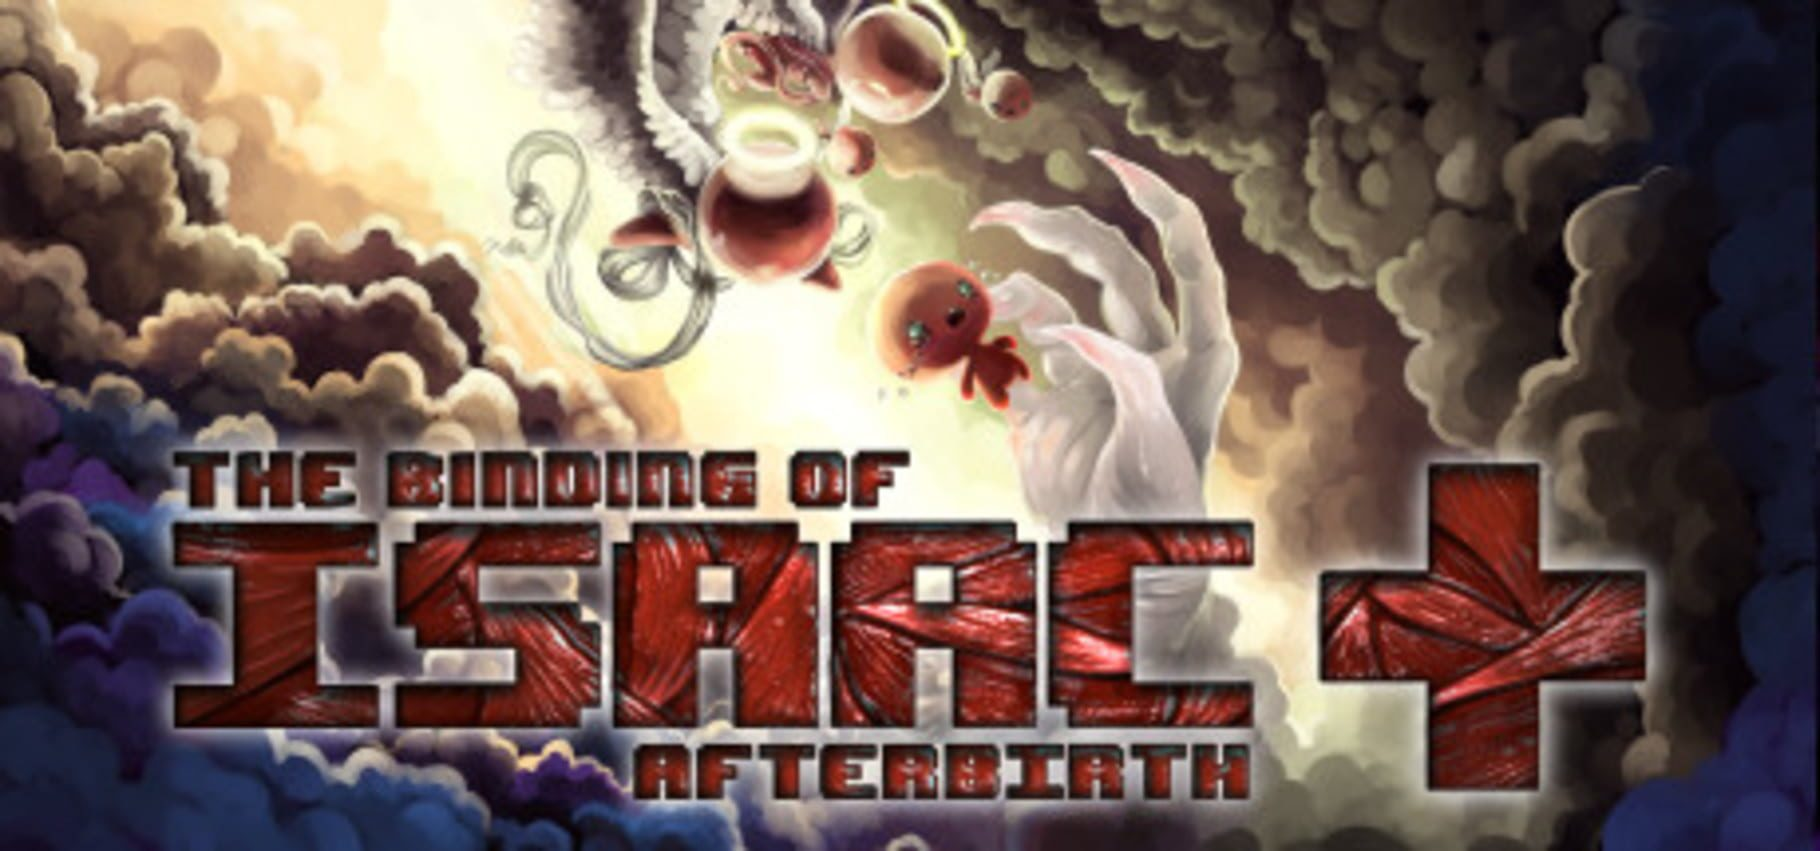 buy The Binding of Isaac: Afterbirth+ cd key for all platform